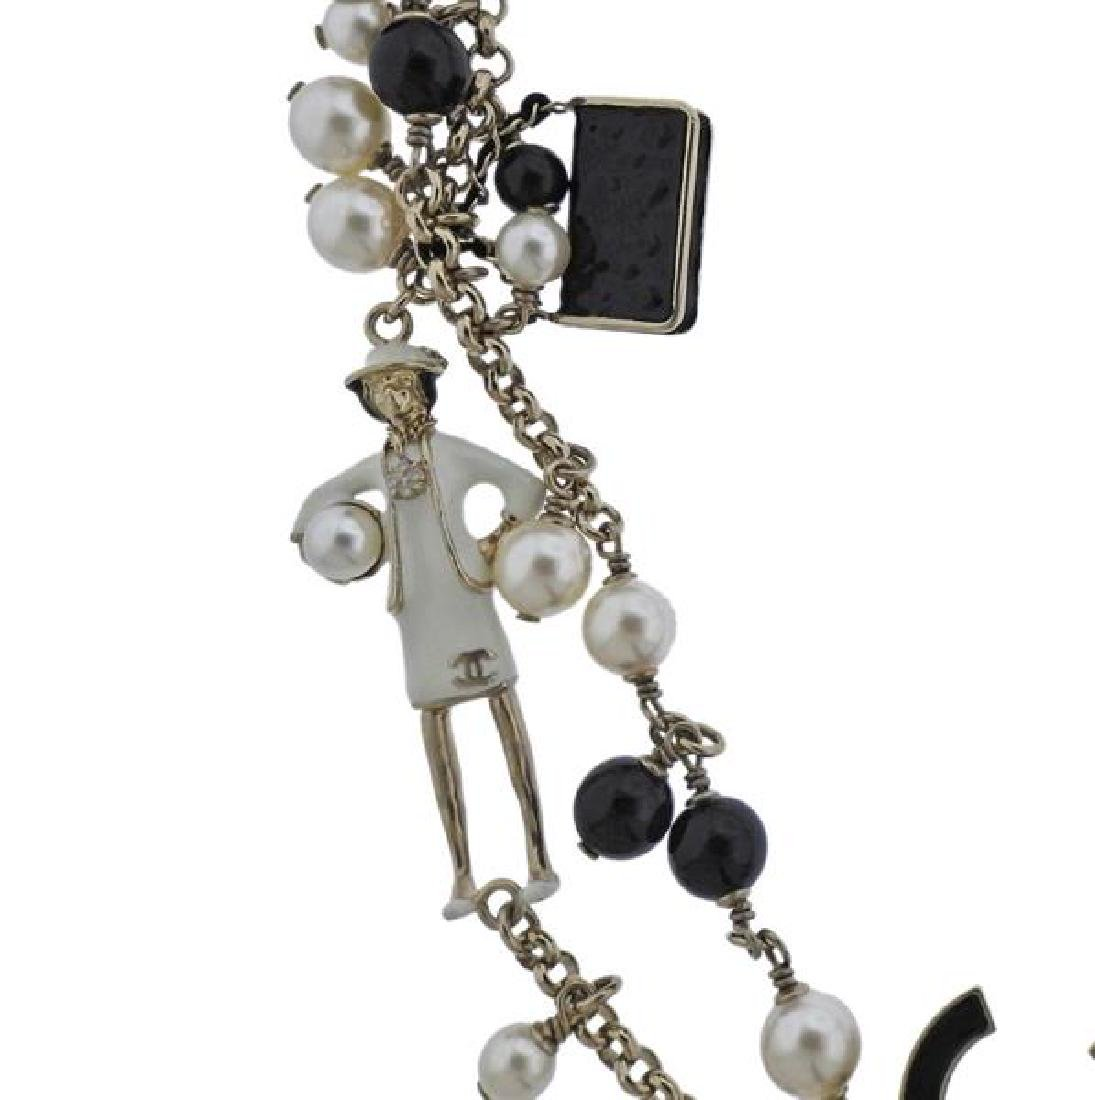 Chanel Black Stone Pearl Costume Charm Long Necklace - 4